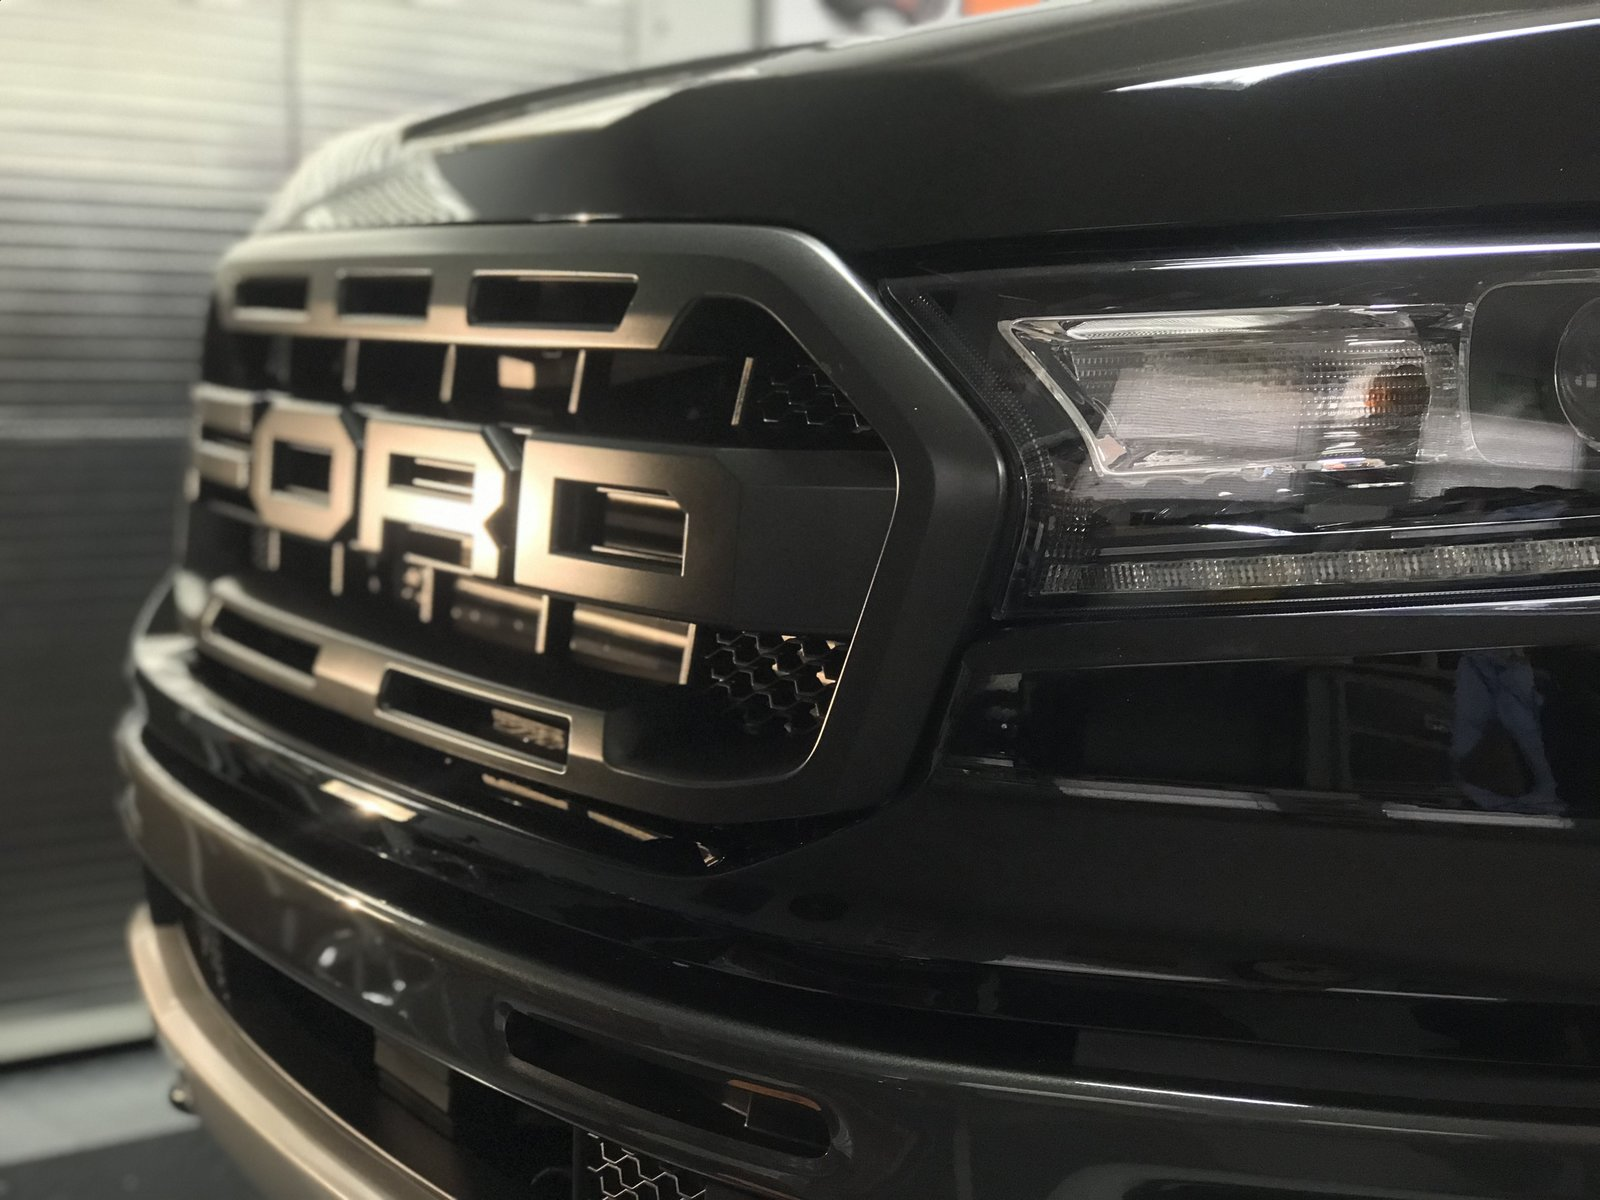 Ford Raptor Interior >> Genuine Ford Ranger Raptor Grille - Install Instructions/Video | Page 4 | 2019+ Ford Ranger and ...